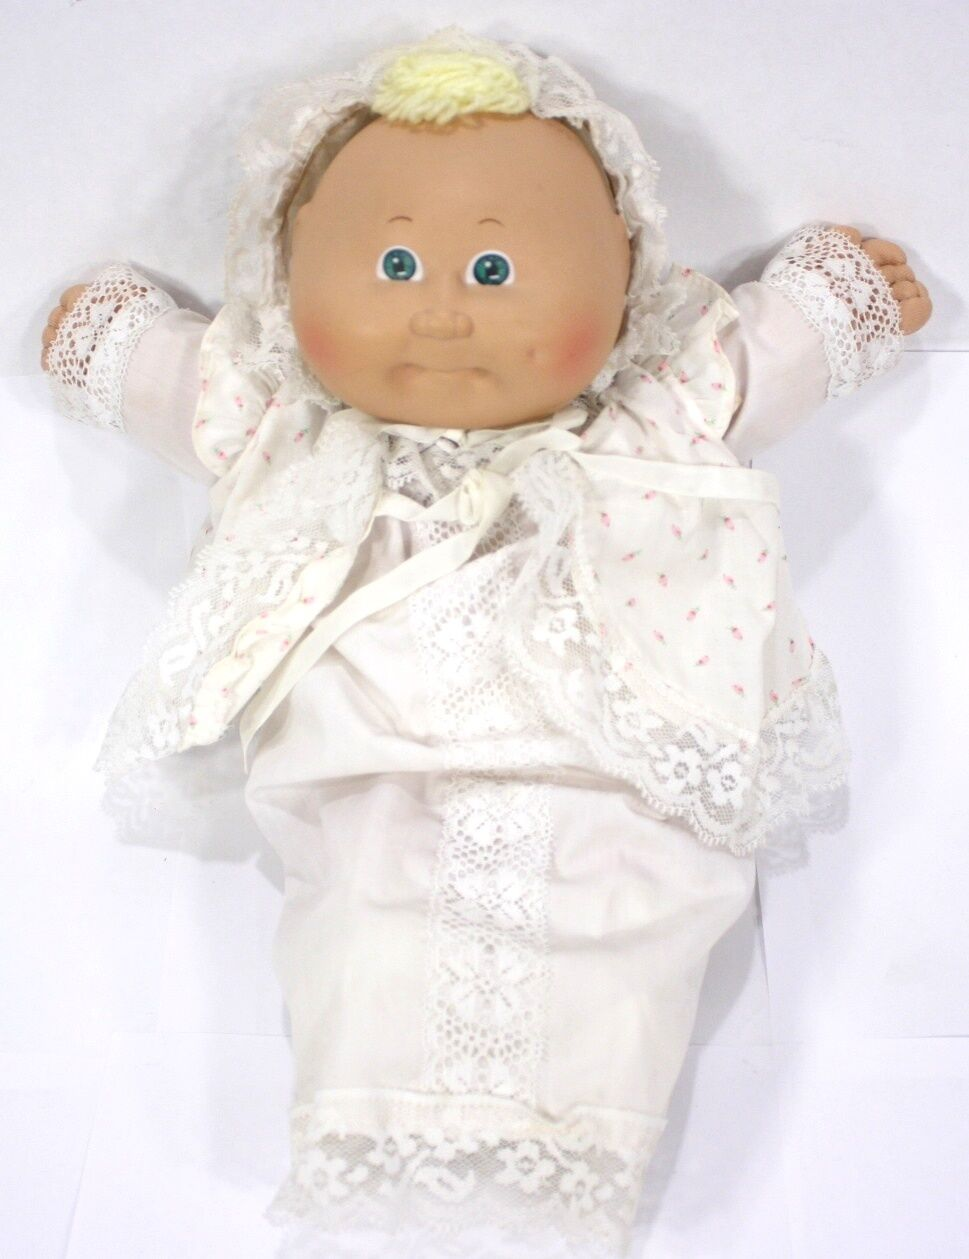 Cabbage Patch Kids 1982 Original Baby Blonde Girl Doll -   3 Coleco - OK PA-1044